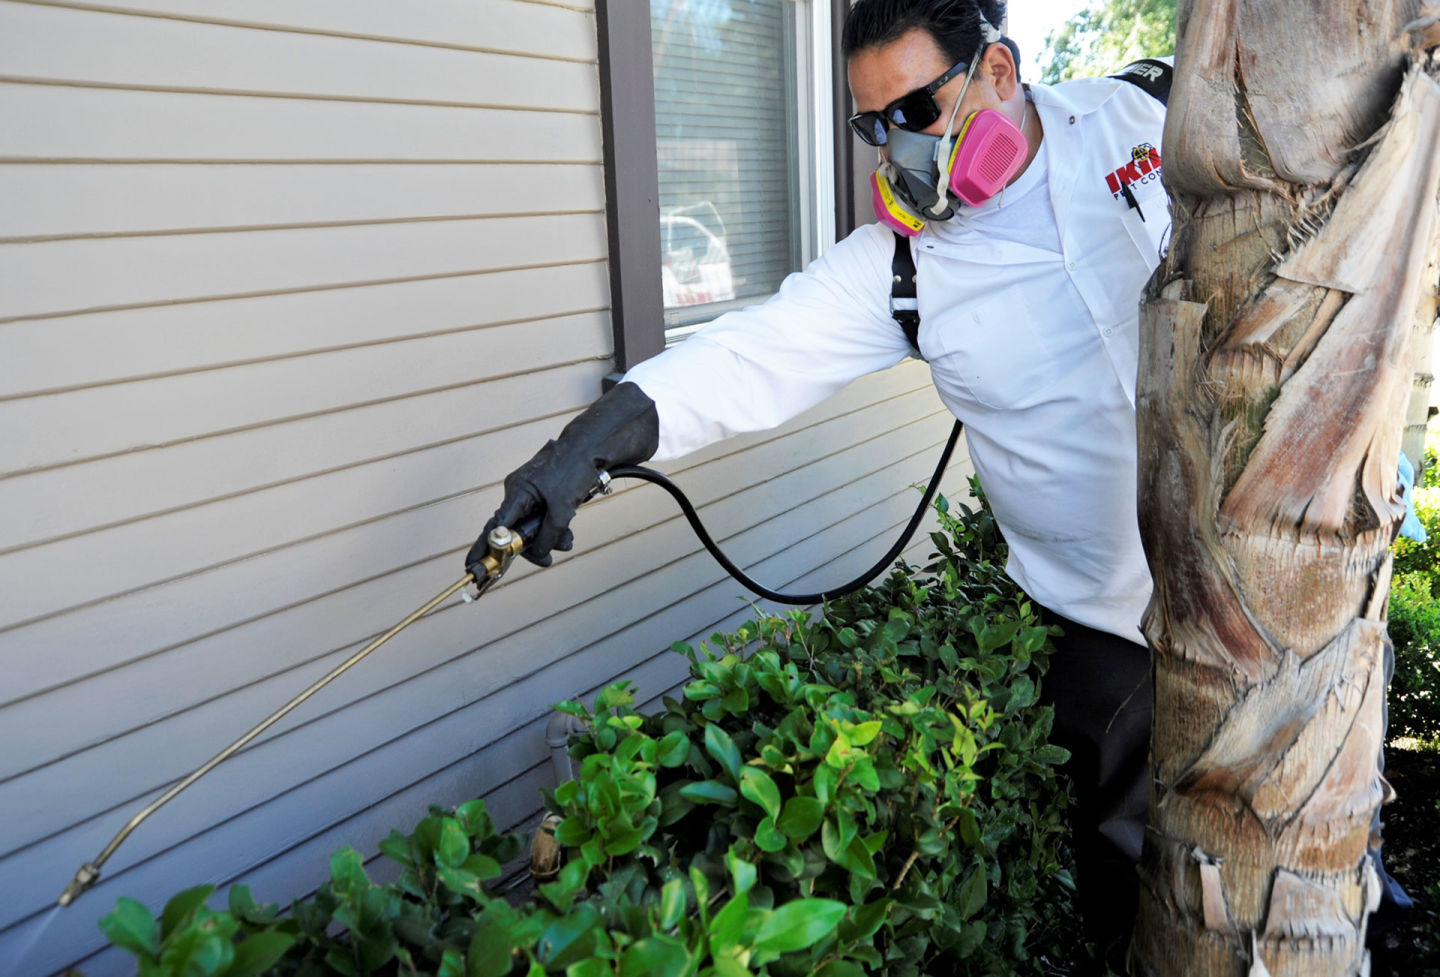 Carlos Rivera of IKILL Pests treats a home for American roaches in Pasadena.